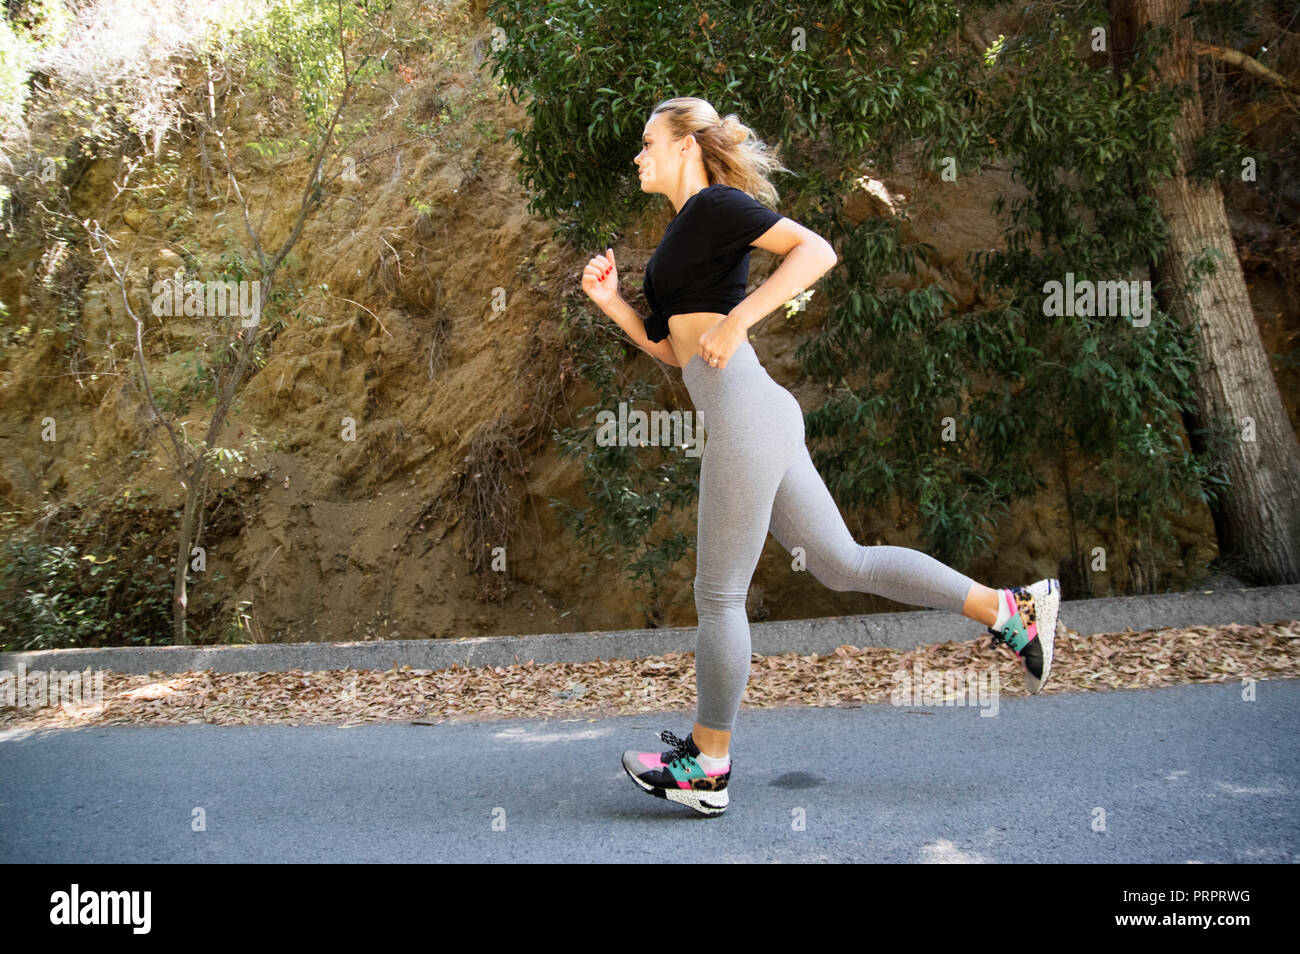 Young woman outdoor running - Stock Image